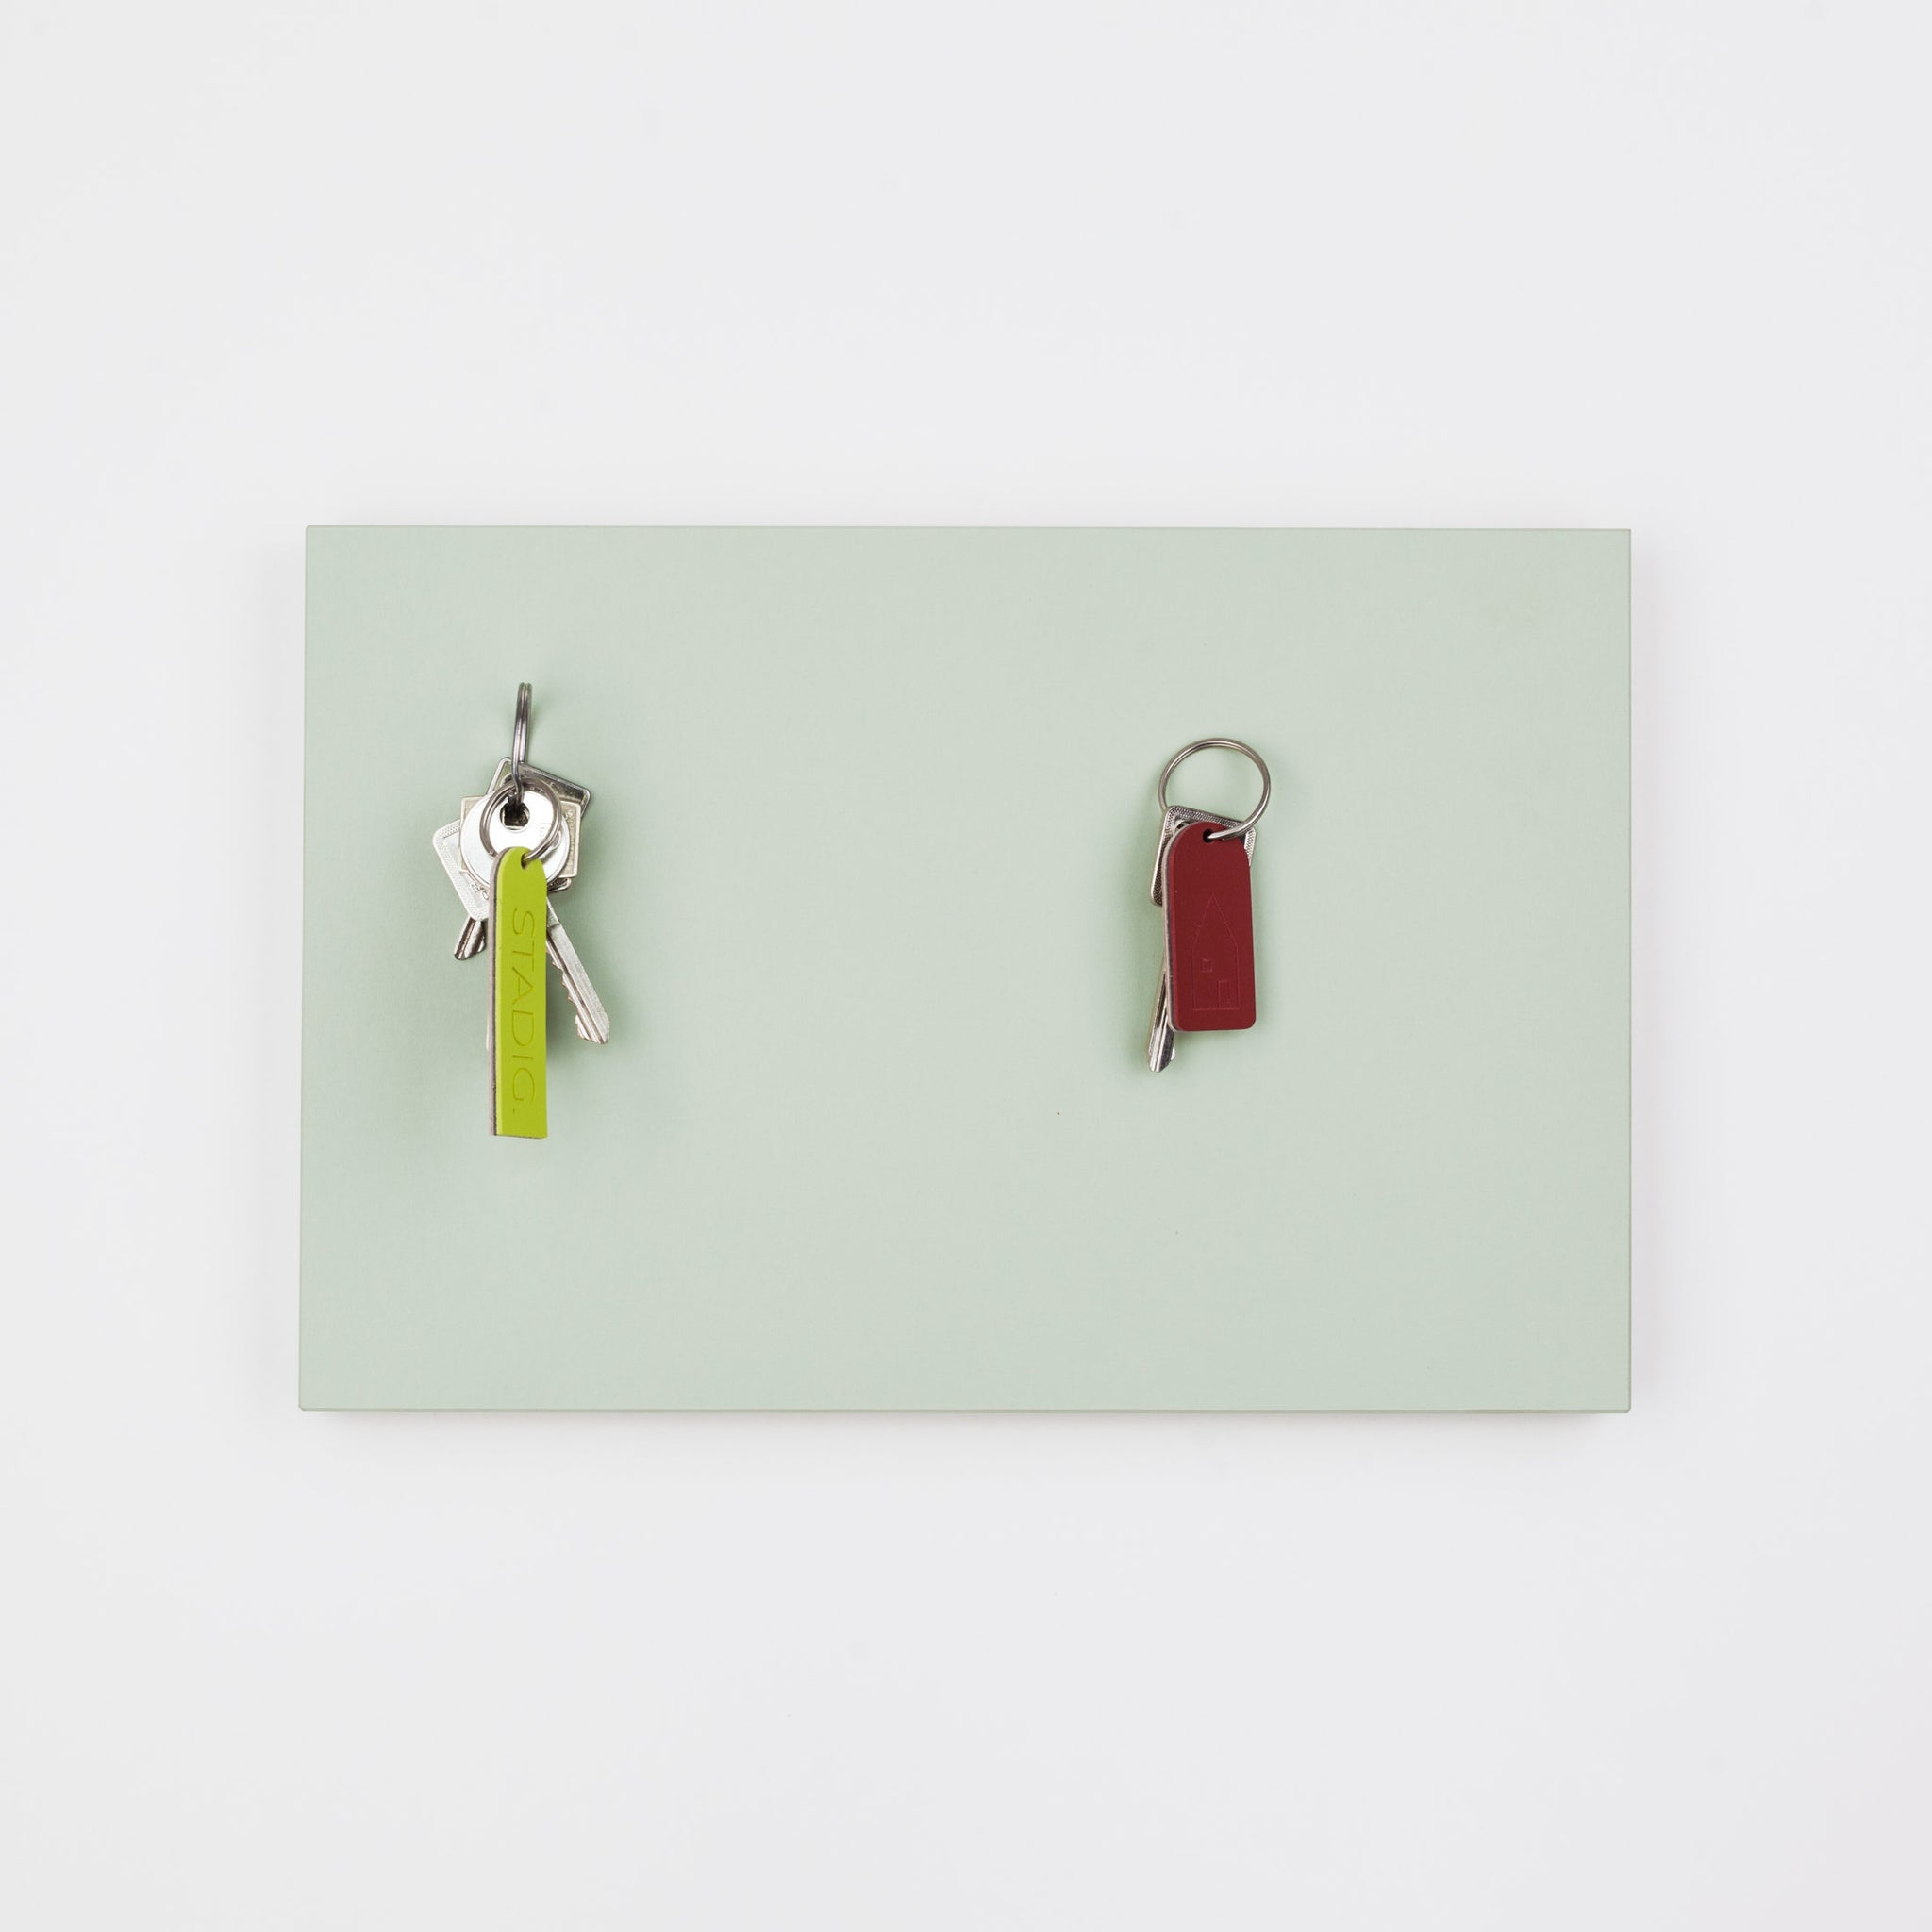 STADIG.anziehend design magnetic key rack #white green